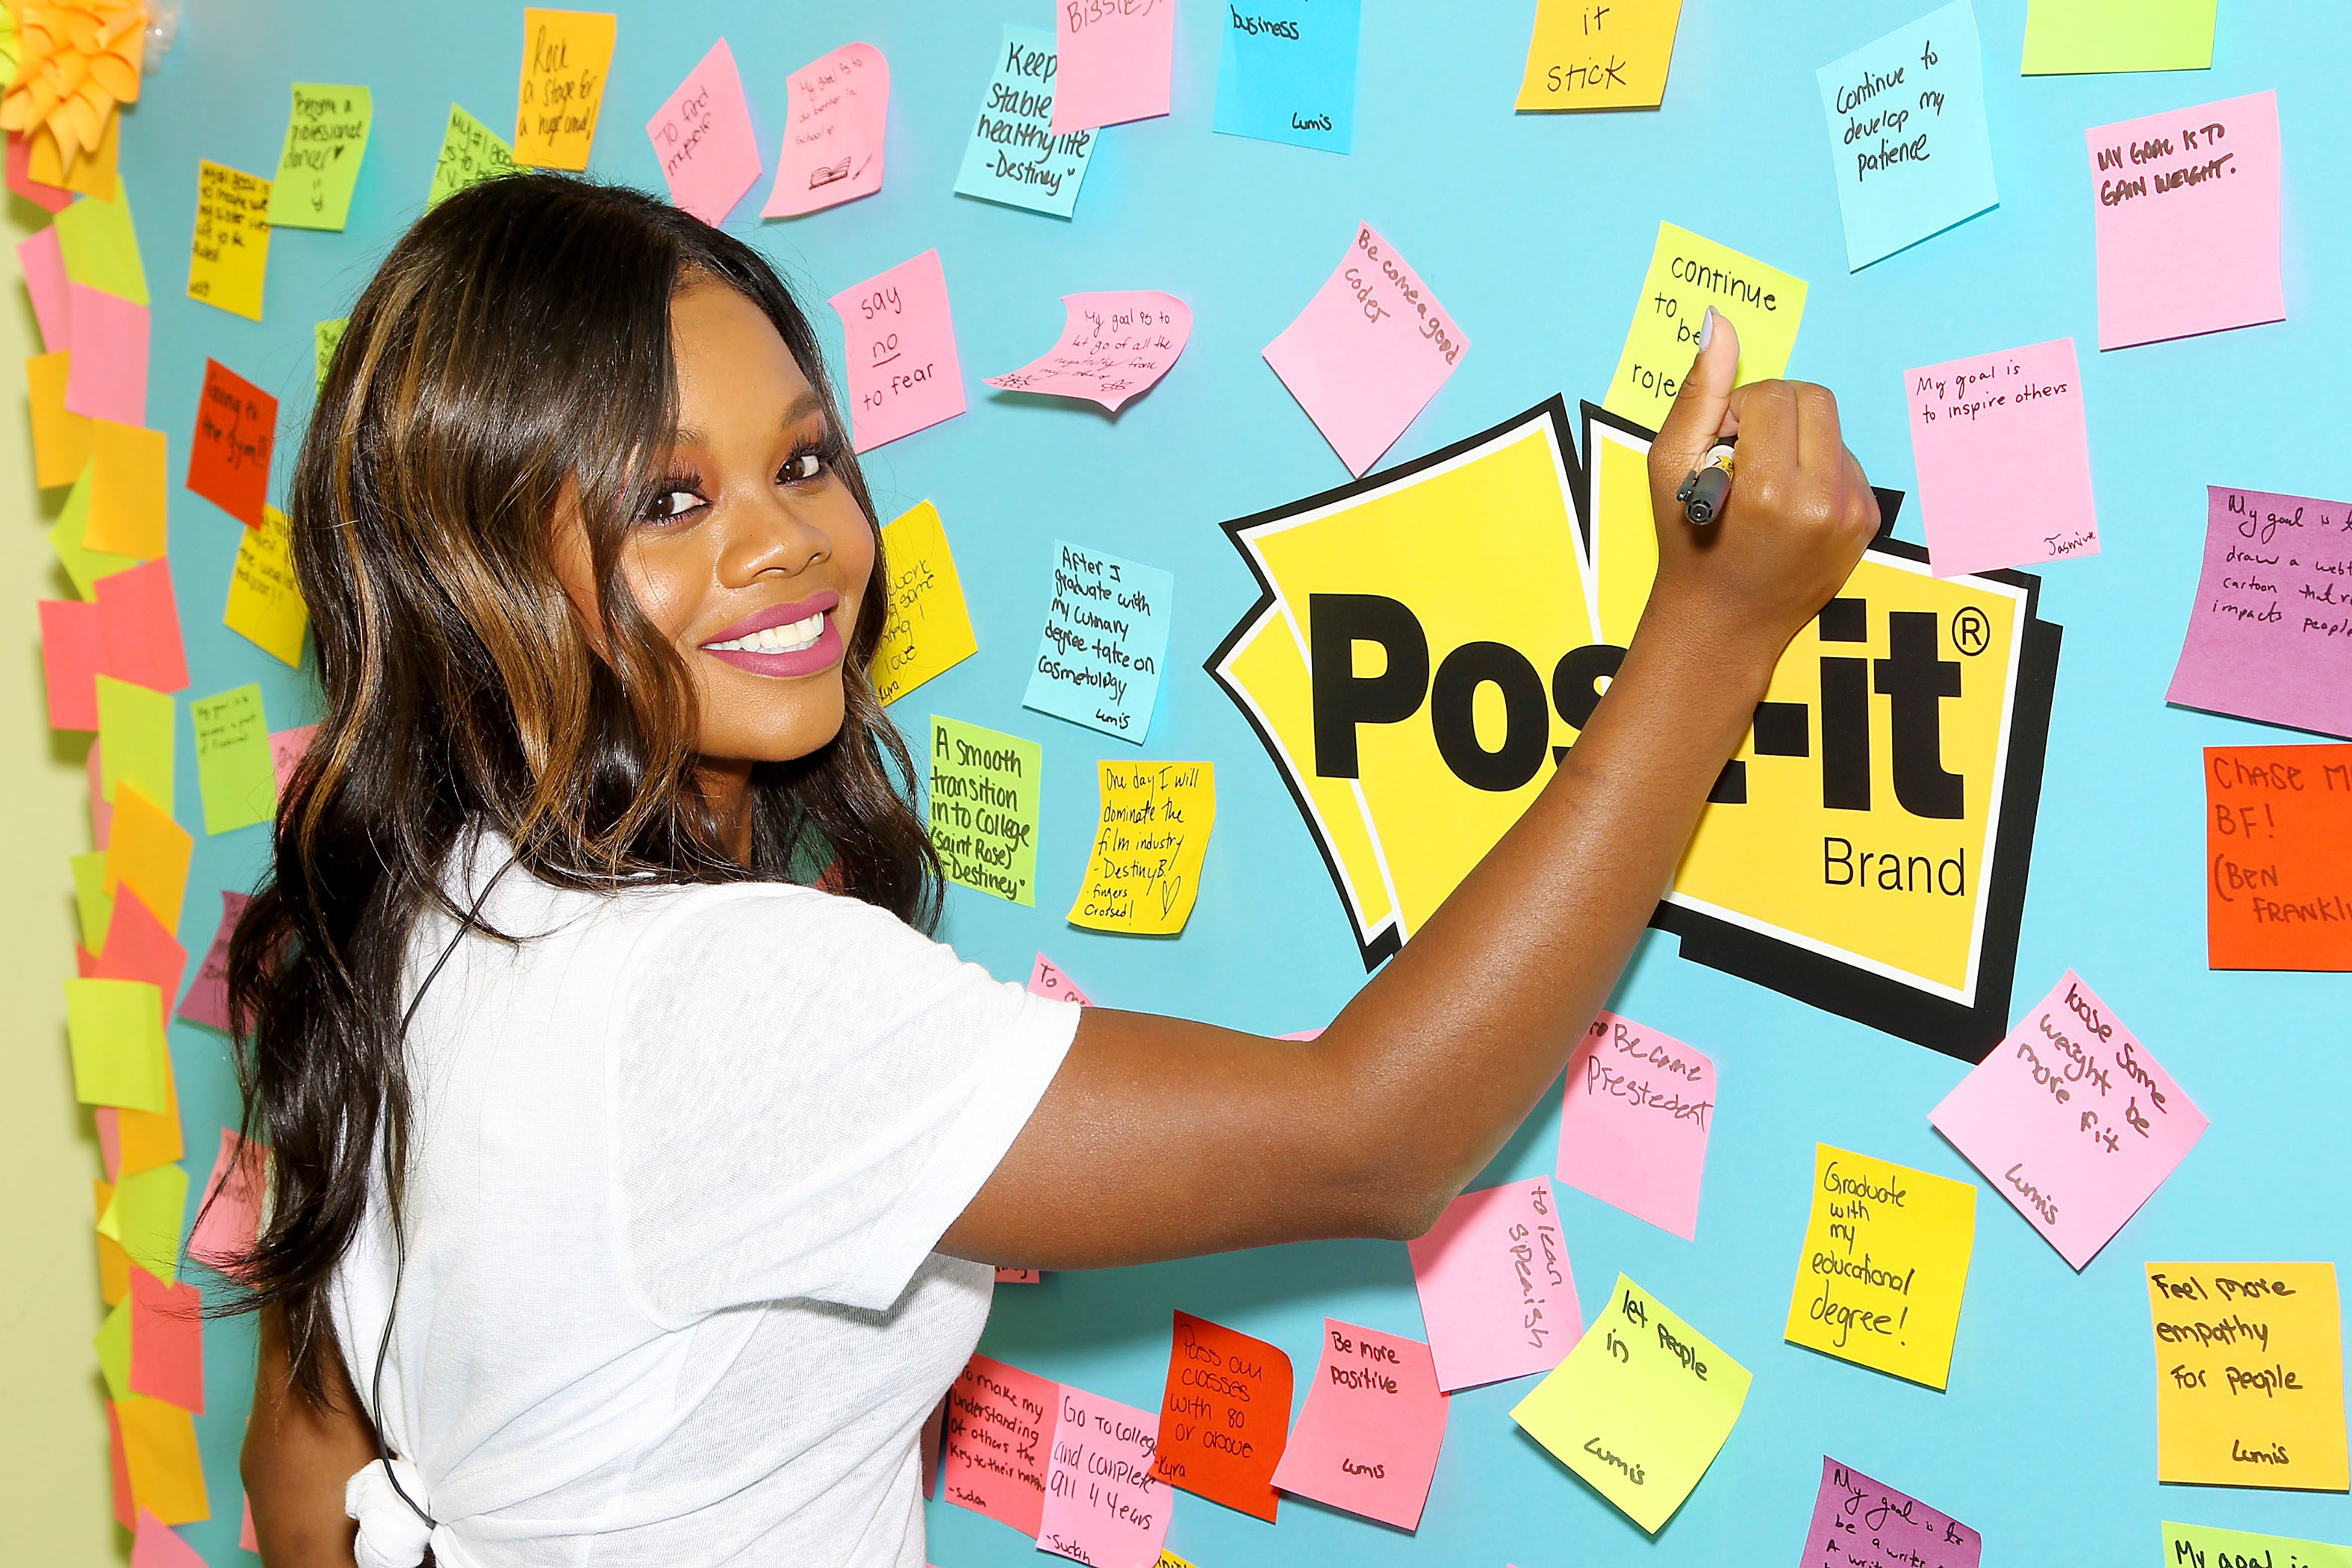 Star, Ok magazine, In Touch, Life and Style, Out - New York, NY - 7/25/17 -  Gabby Douglas and Post-it Brand talk to kids at Publicolor about how to Make it Stick during Back to School   -Pictured: Gabby Douglas -Photo by: Marion Curtis/StarPix -Location: Publicolor NYC